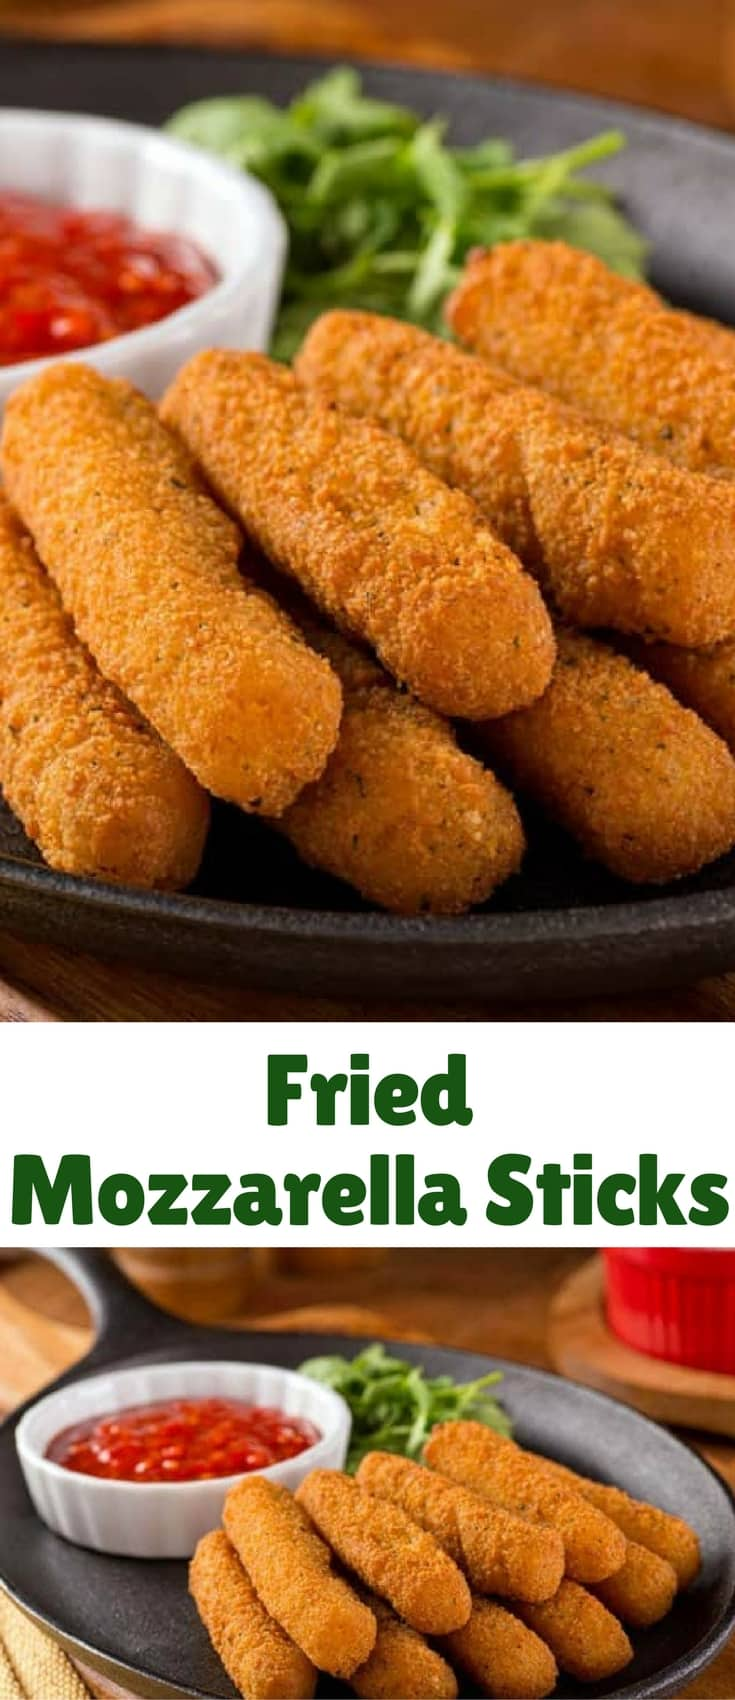 Fried Mozzarella Sticks are an EASY to make. If I had known how easy fried Mozzarella sticks are to make in my deep fryer, I would have made them years ago.